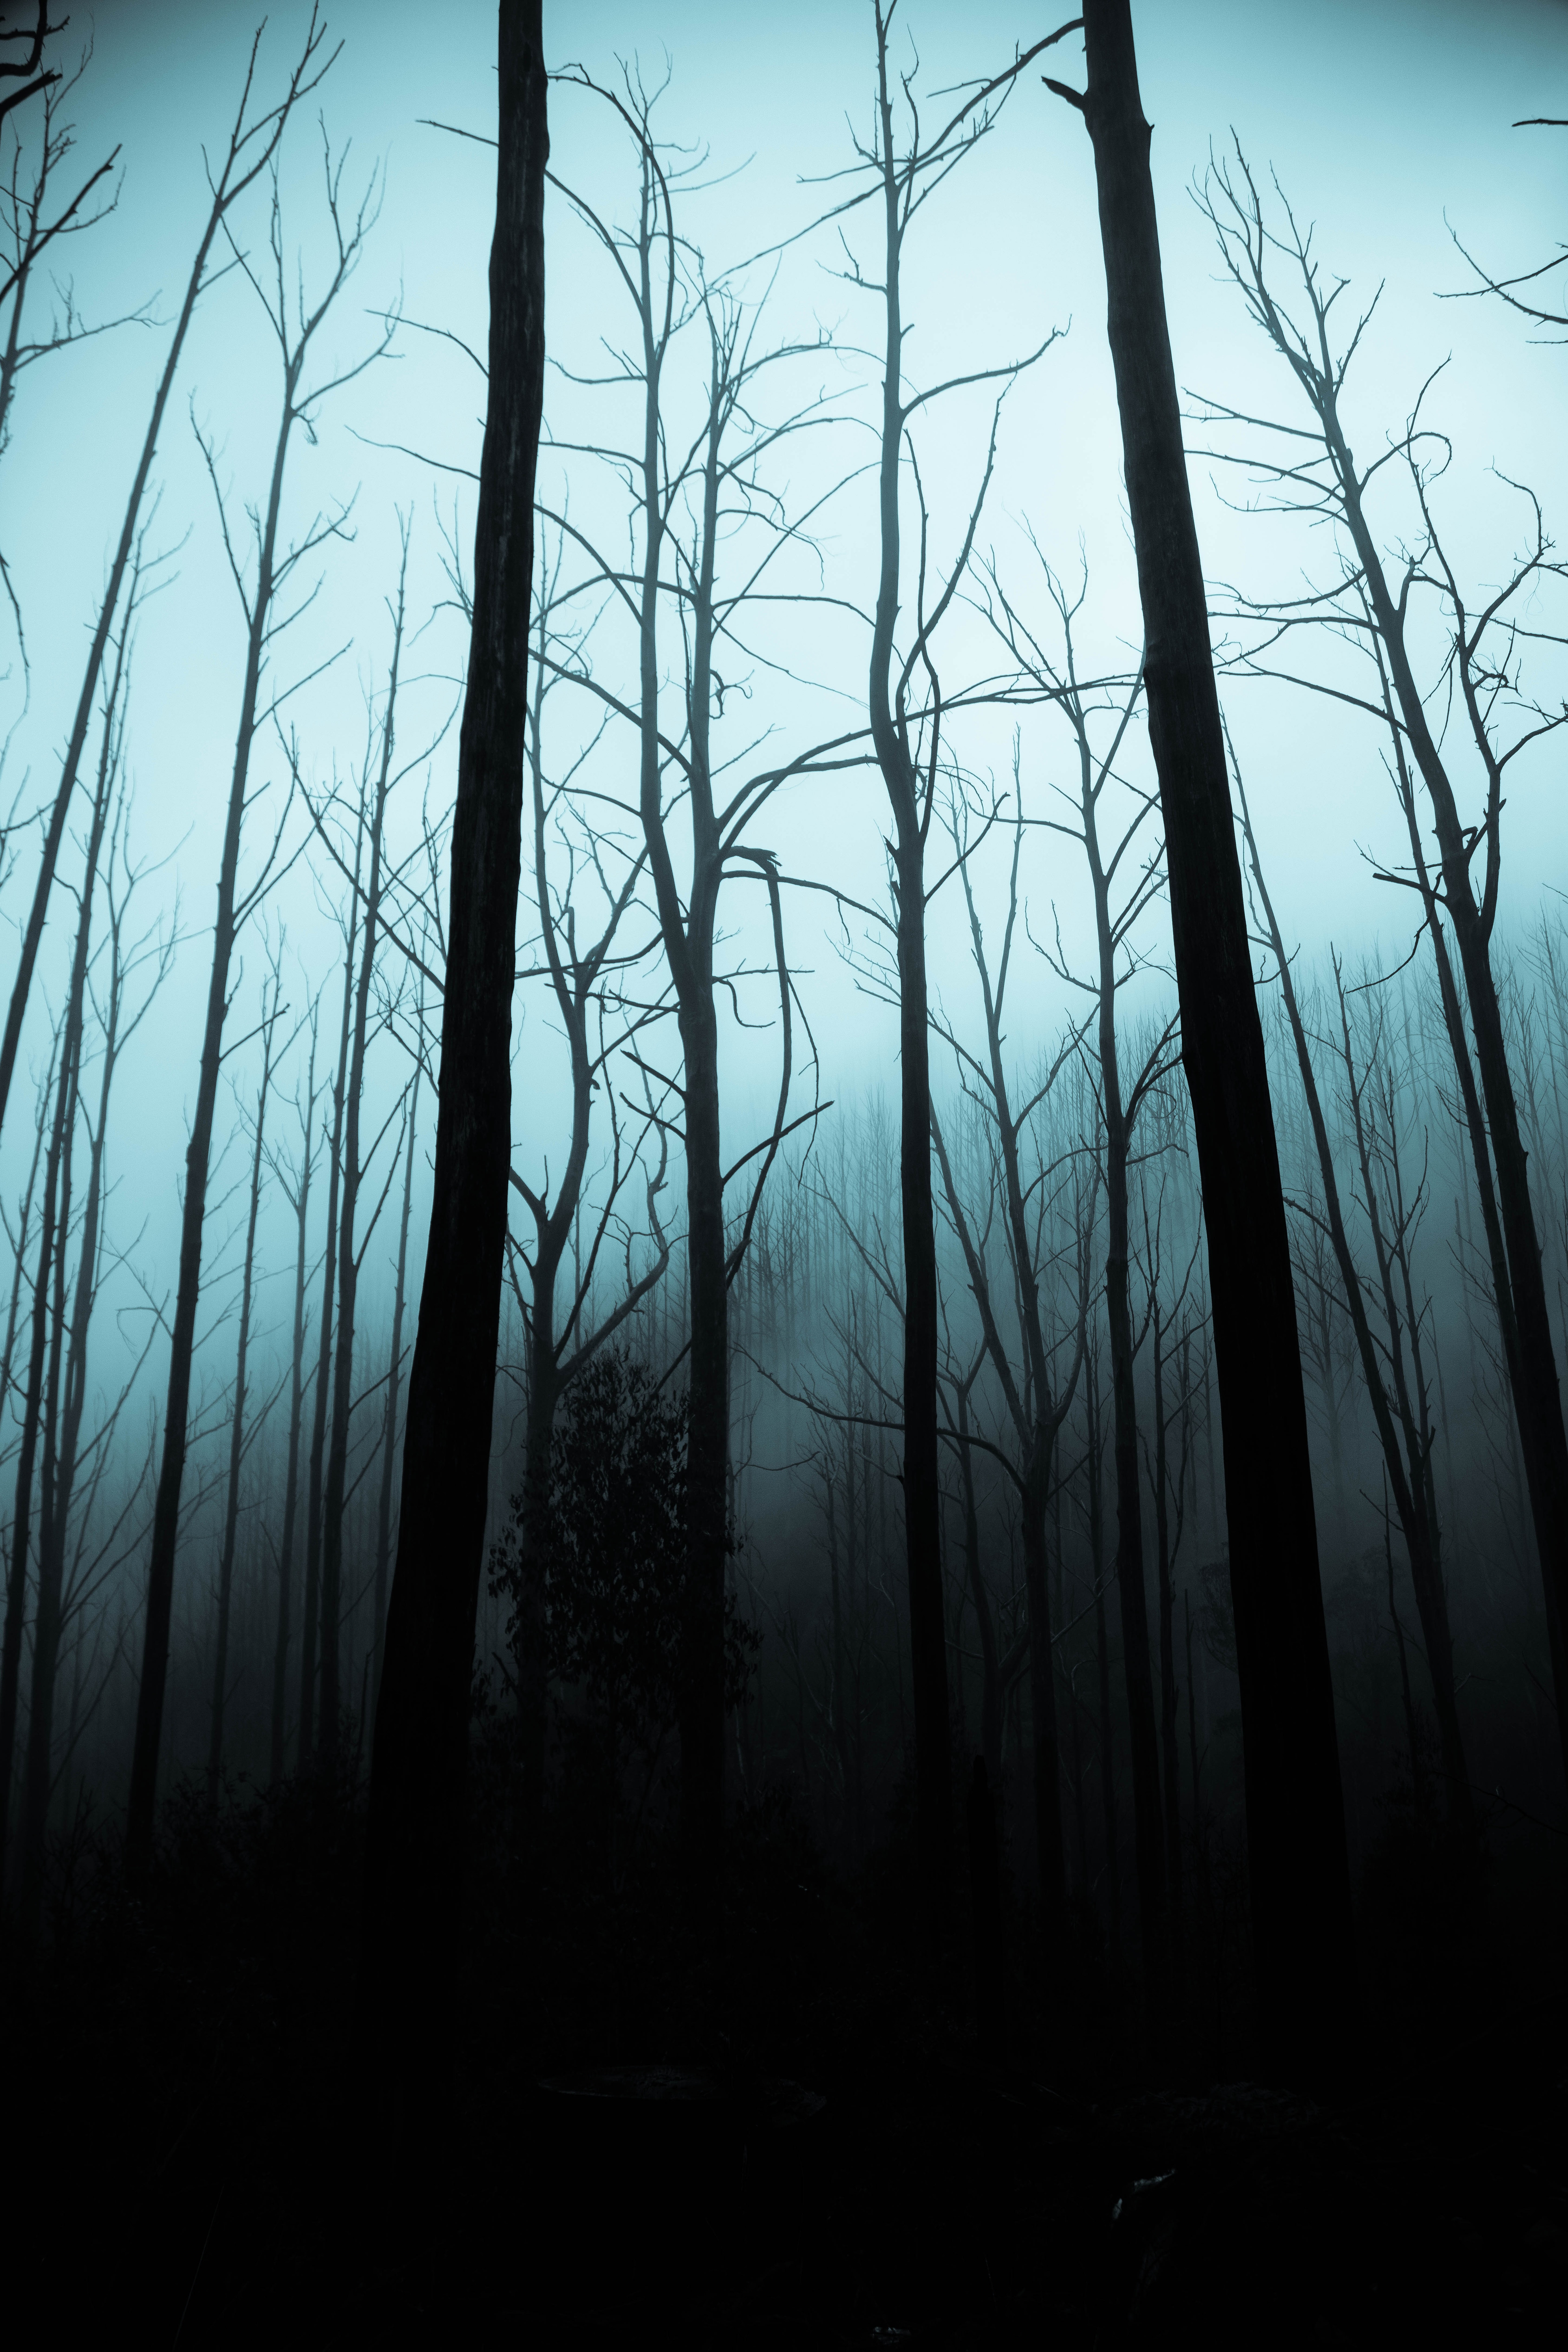 111208 download wallpaper Night, Trees, Dark, Forest, Fog, Gloomy screensavers and pictures for free